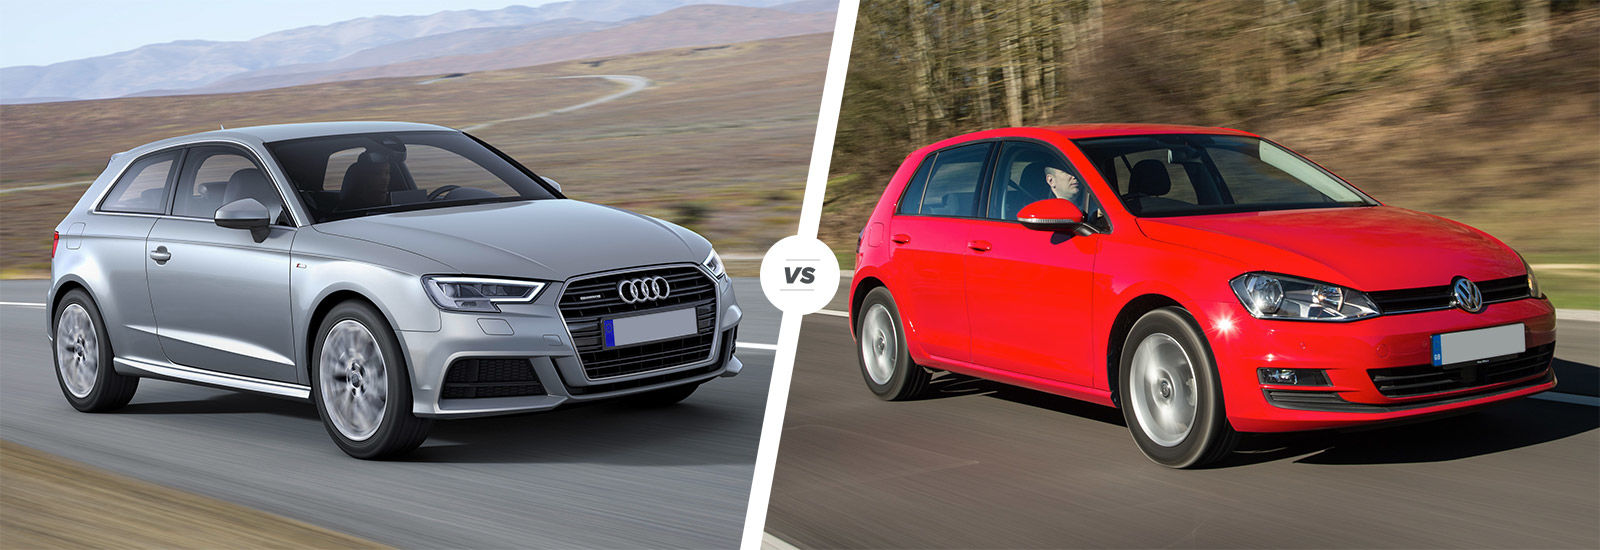 Audi A3 Vs Vw Golf Side By Side Comparison Carwow